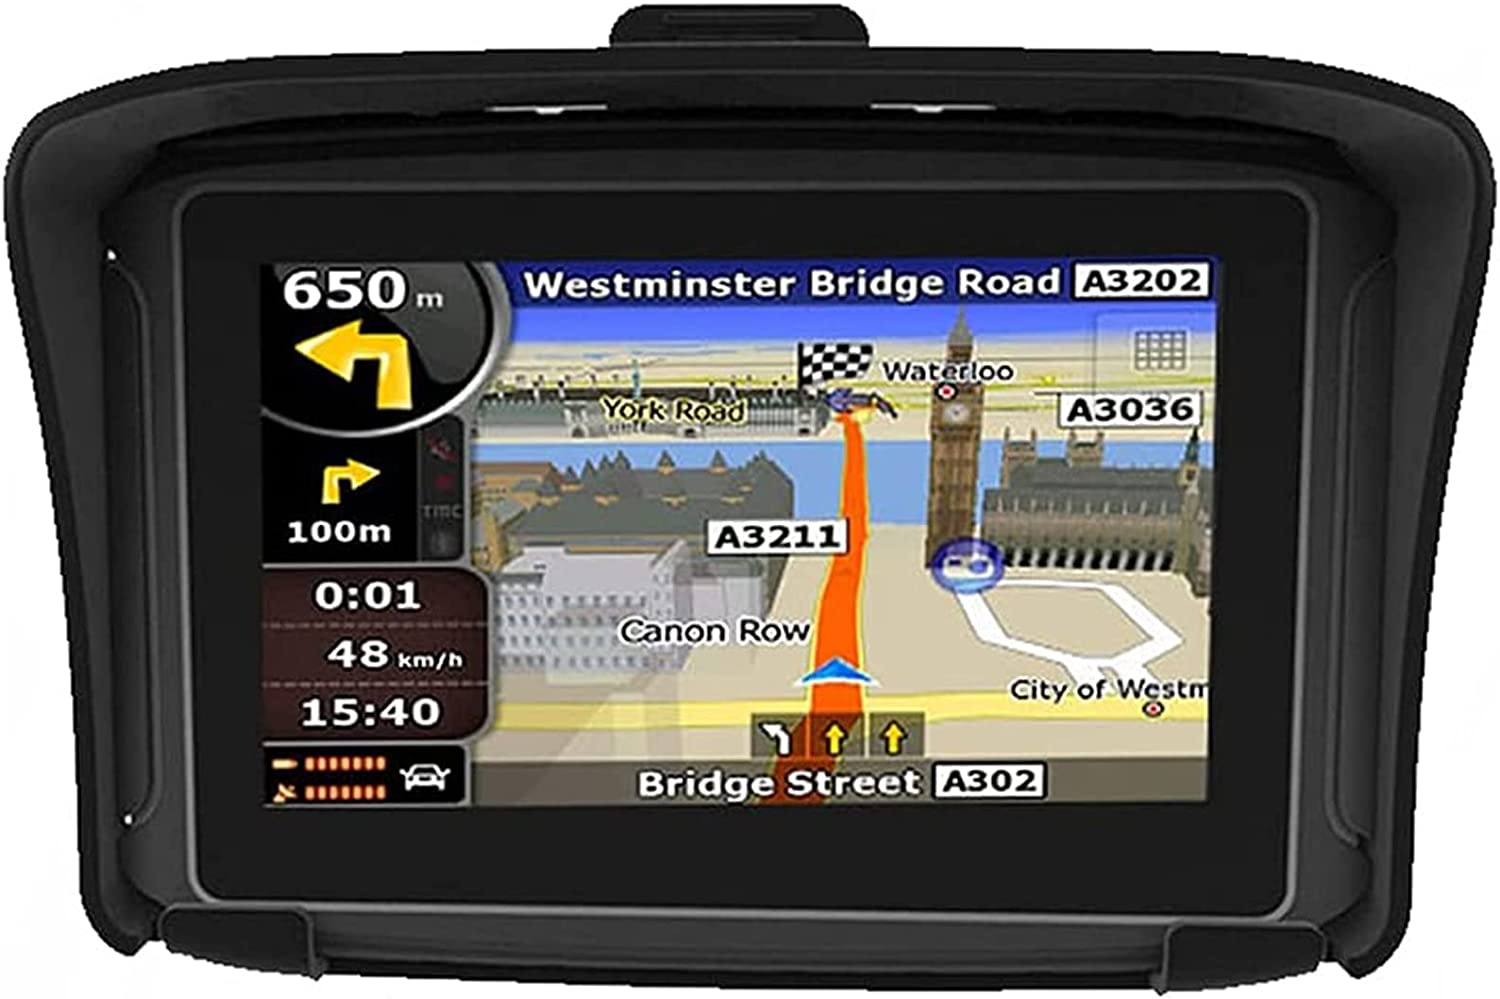 4.3 Inch Motorcycle GPS Navigation Device, Strong Waterproof,with Motorcycle Special Bracket and Equipment Protection Cover, Suitable for All Motorcycles